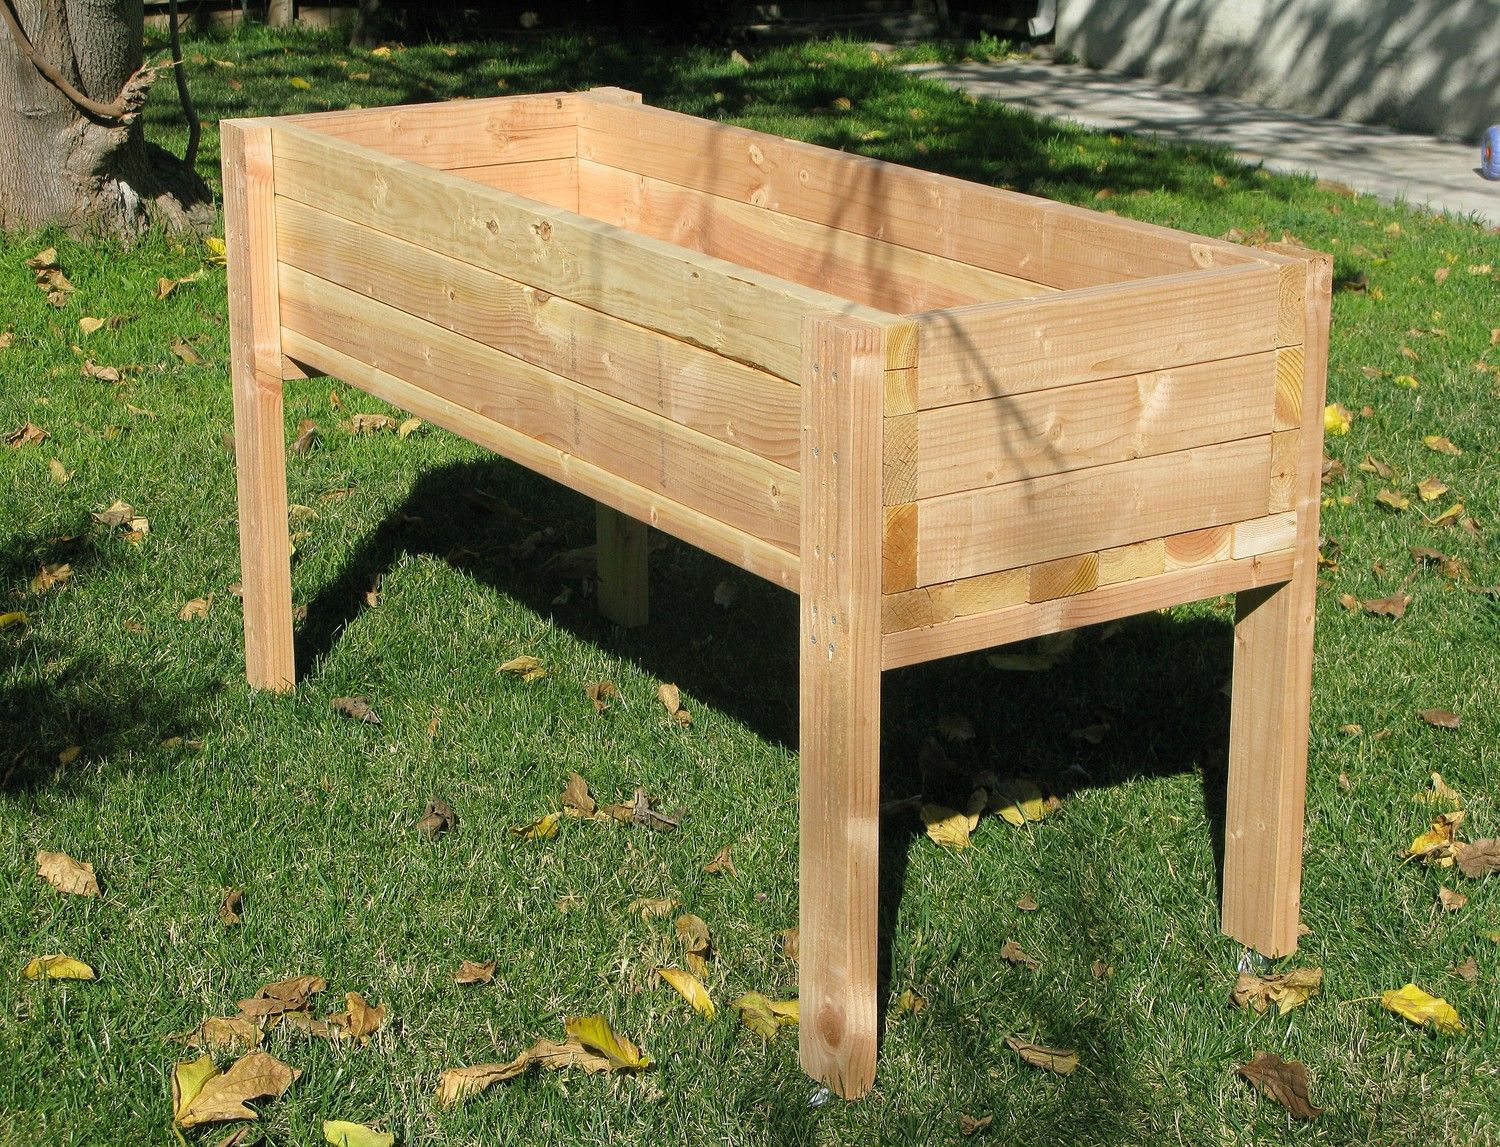 Living green planters portable elevated planter box i for How to make a bed stand